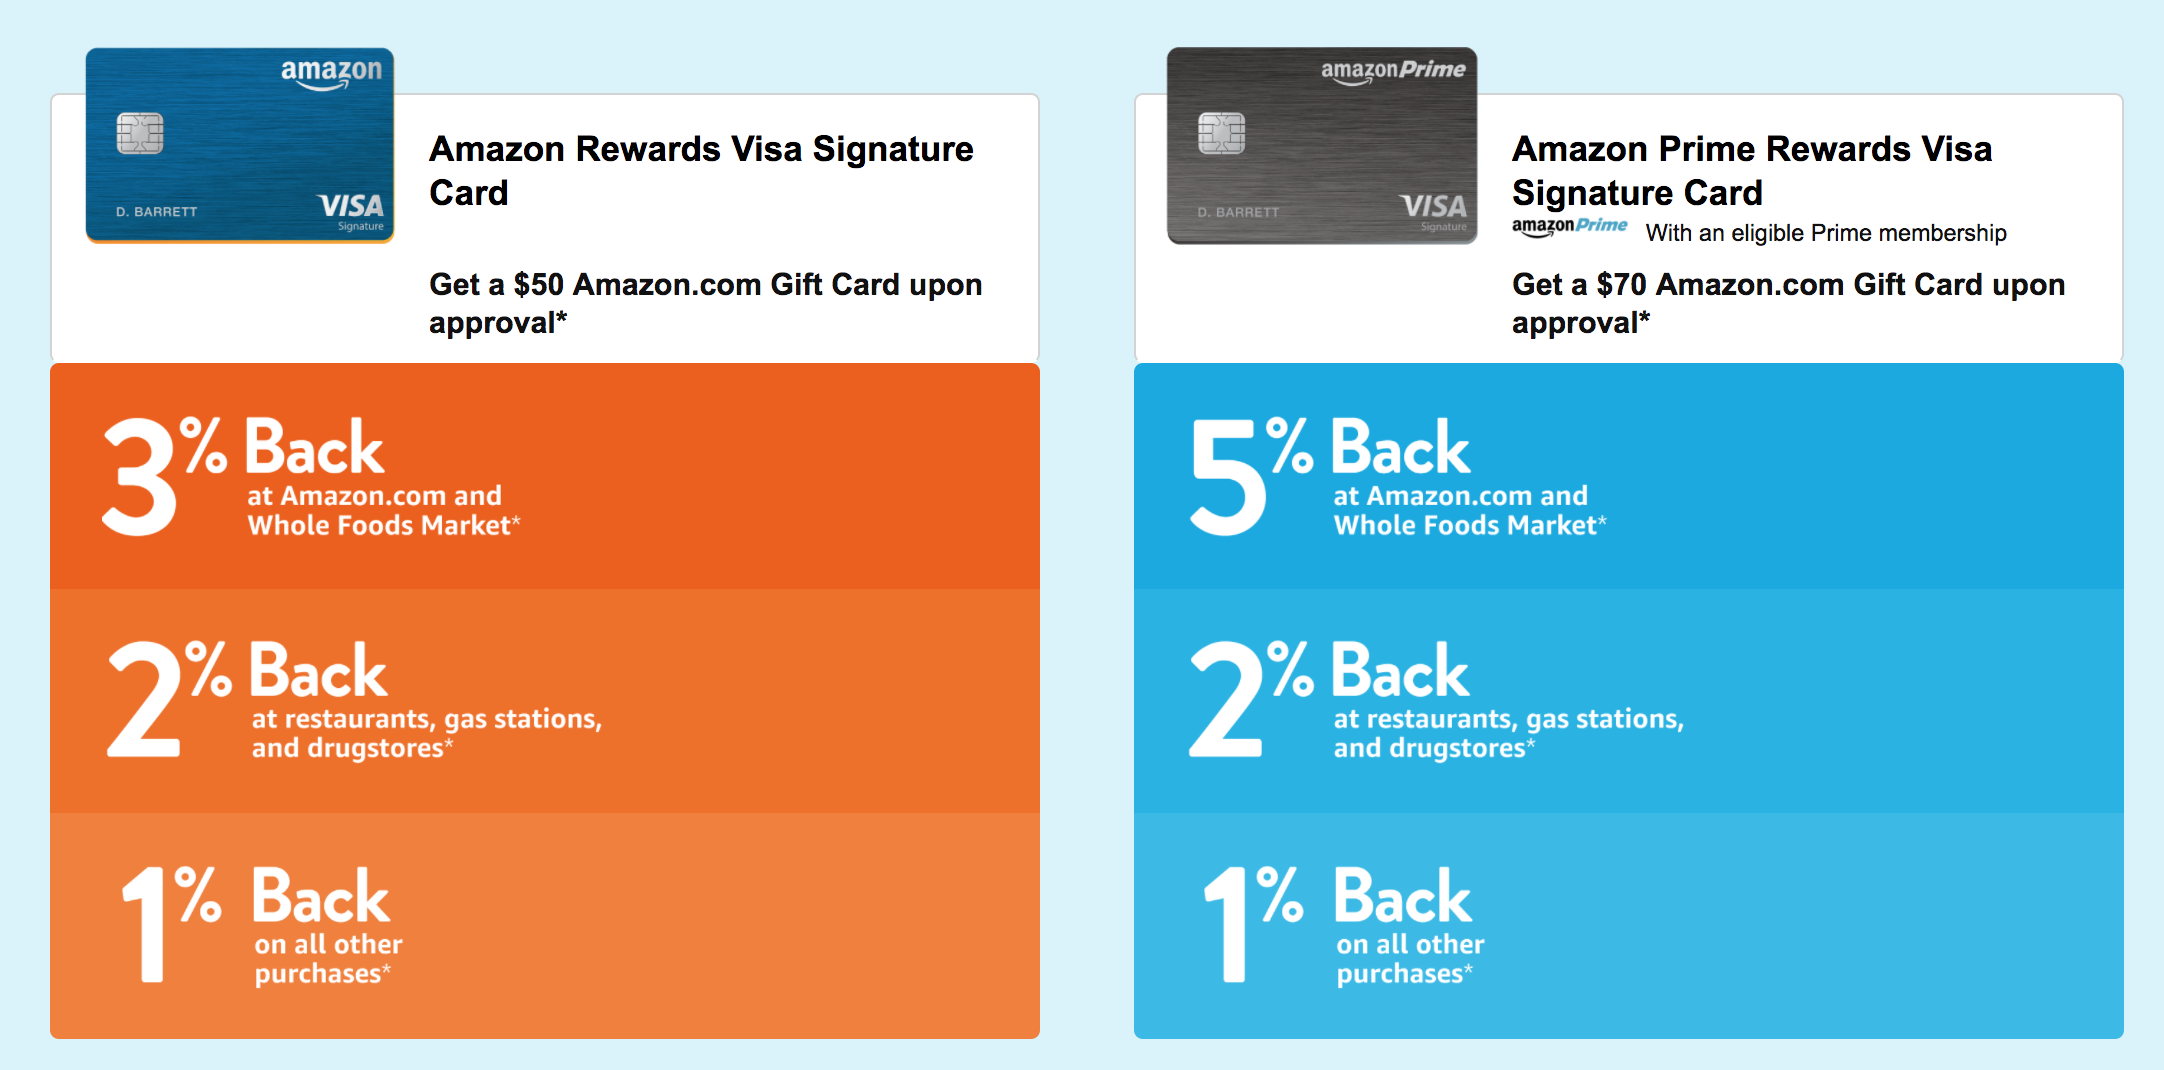 Amazon Credit Cards - Amazon Rewards vs The Prime Rewards Card [6]